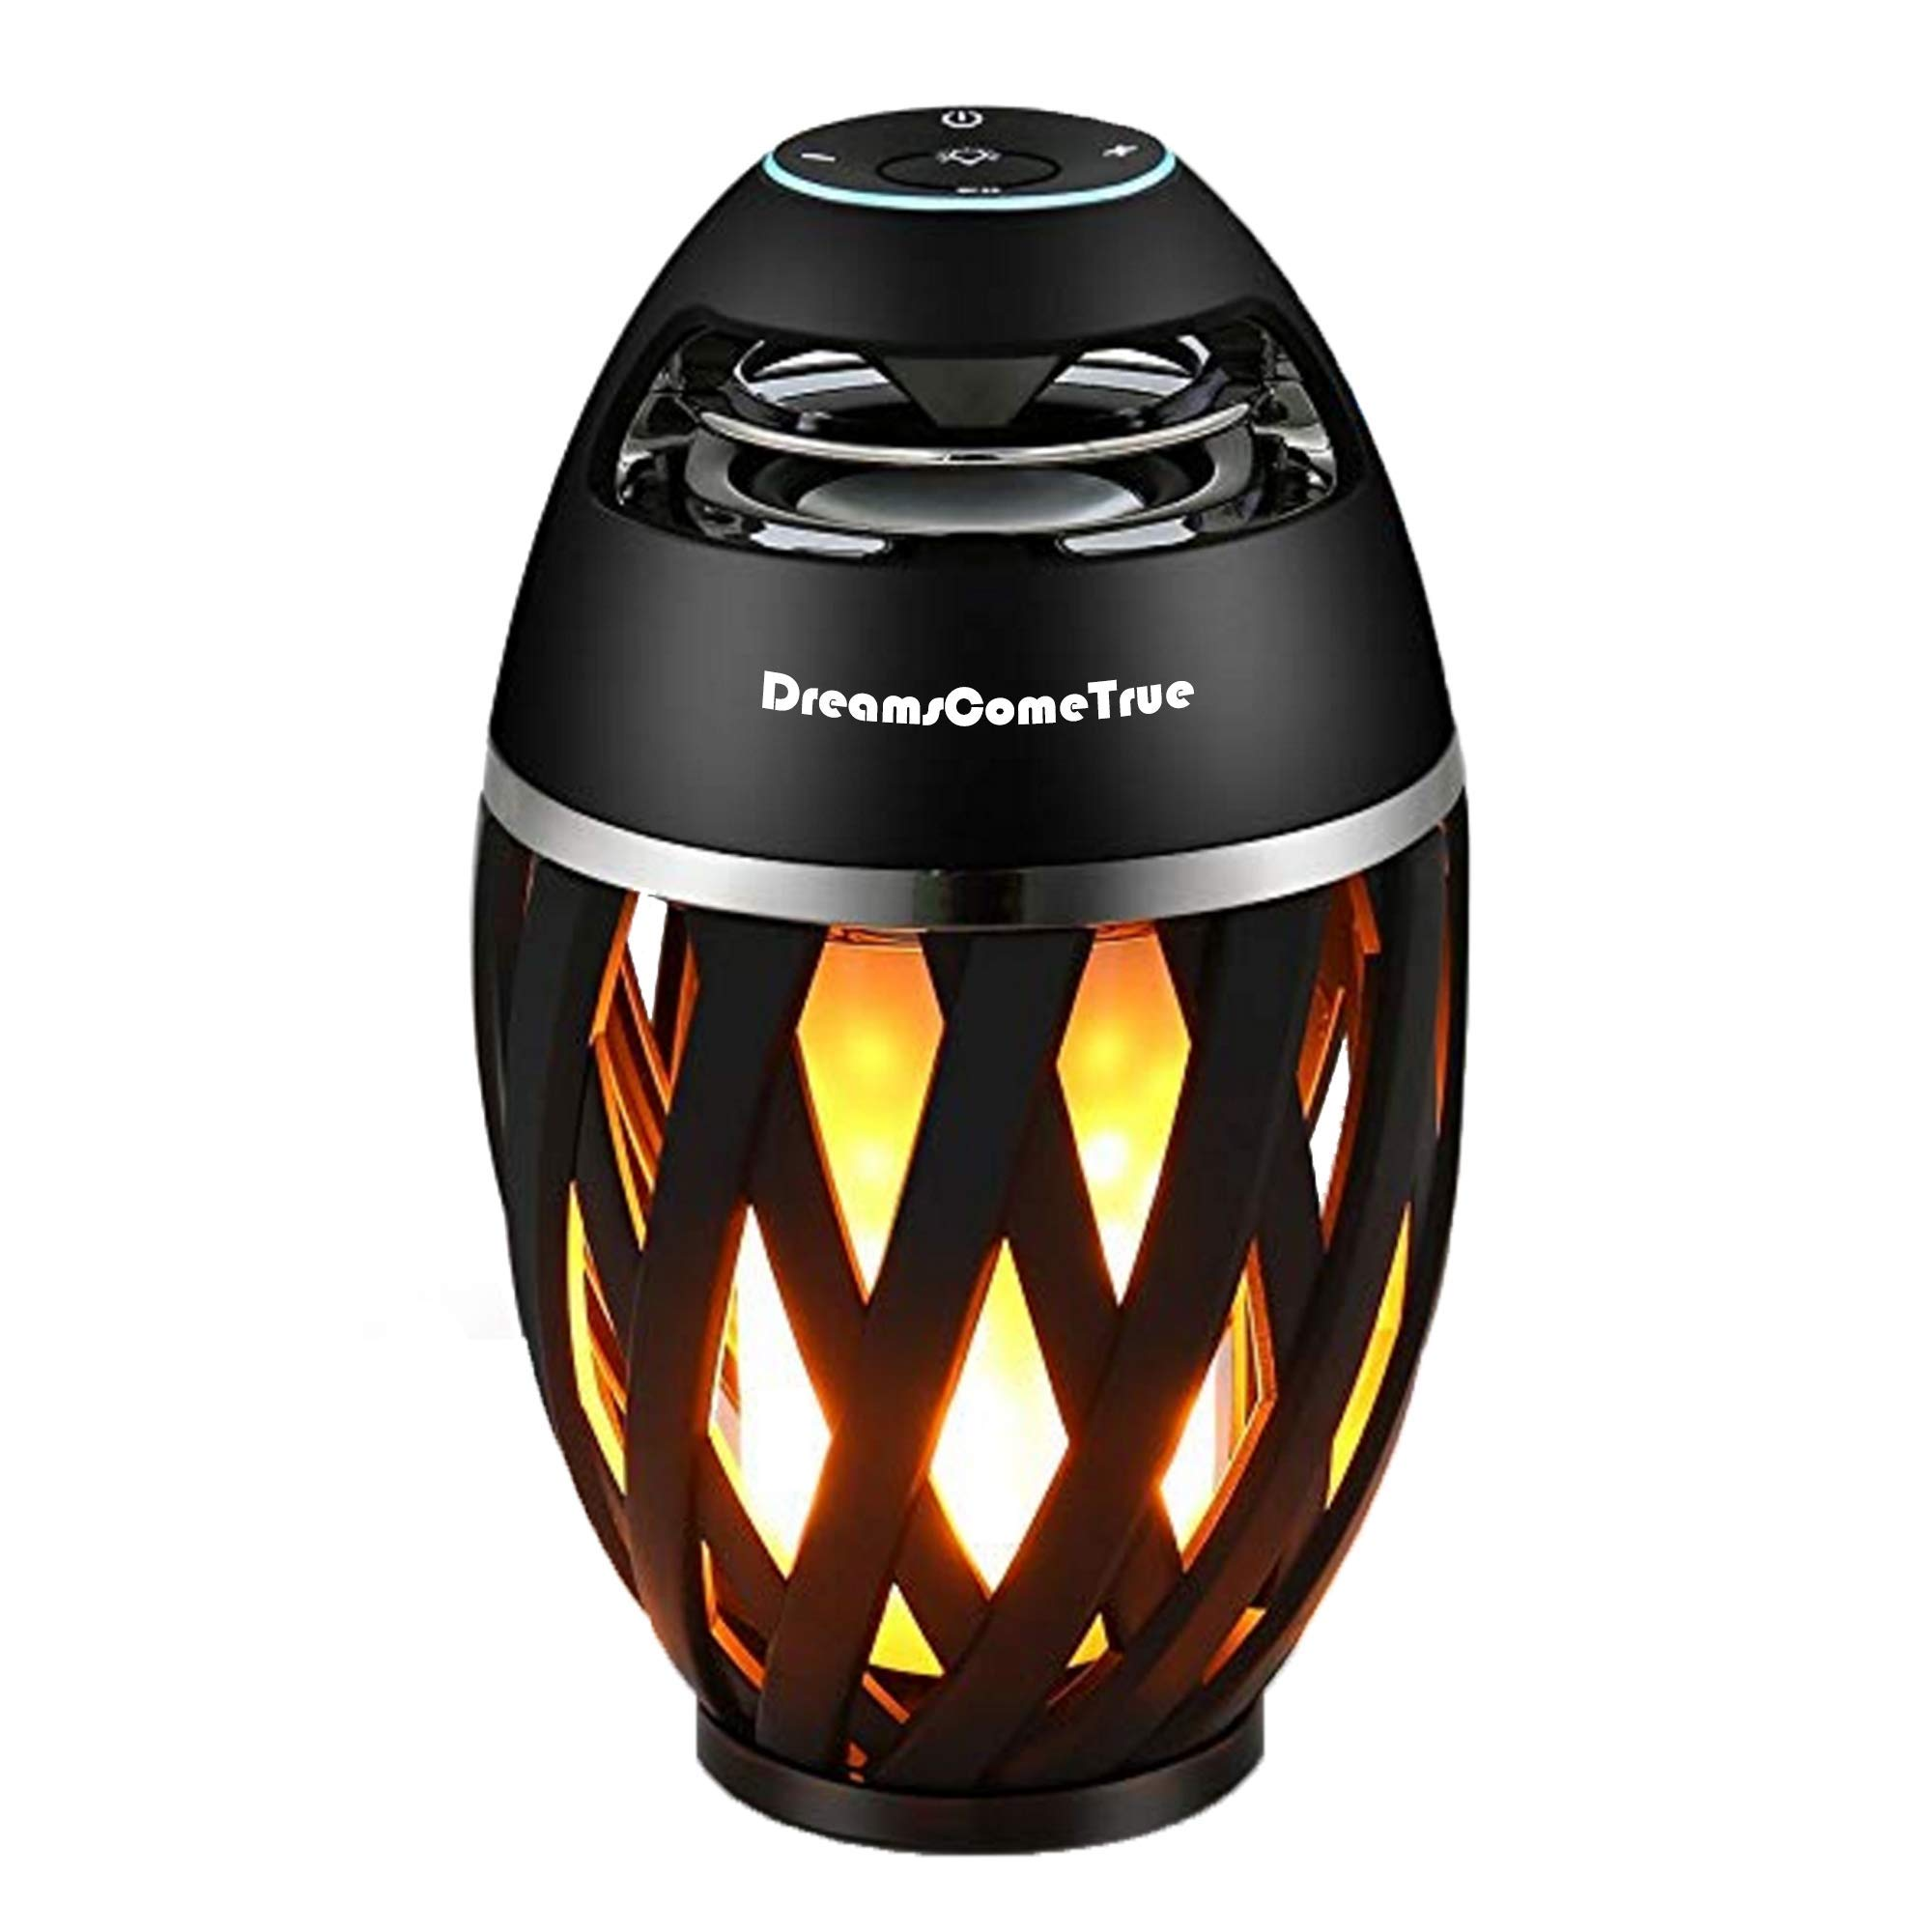 Led Flame Speaker, Flame Atmosphere Table Lamp, Music Night Light,Outdoor Portable and Waterpoof Bluetooth Stereo Speaker with HD Audio and Enhanced Bass, for iPhone/iPad/Android by DreamsComeTrue